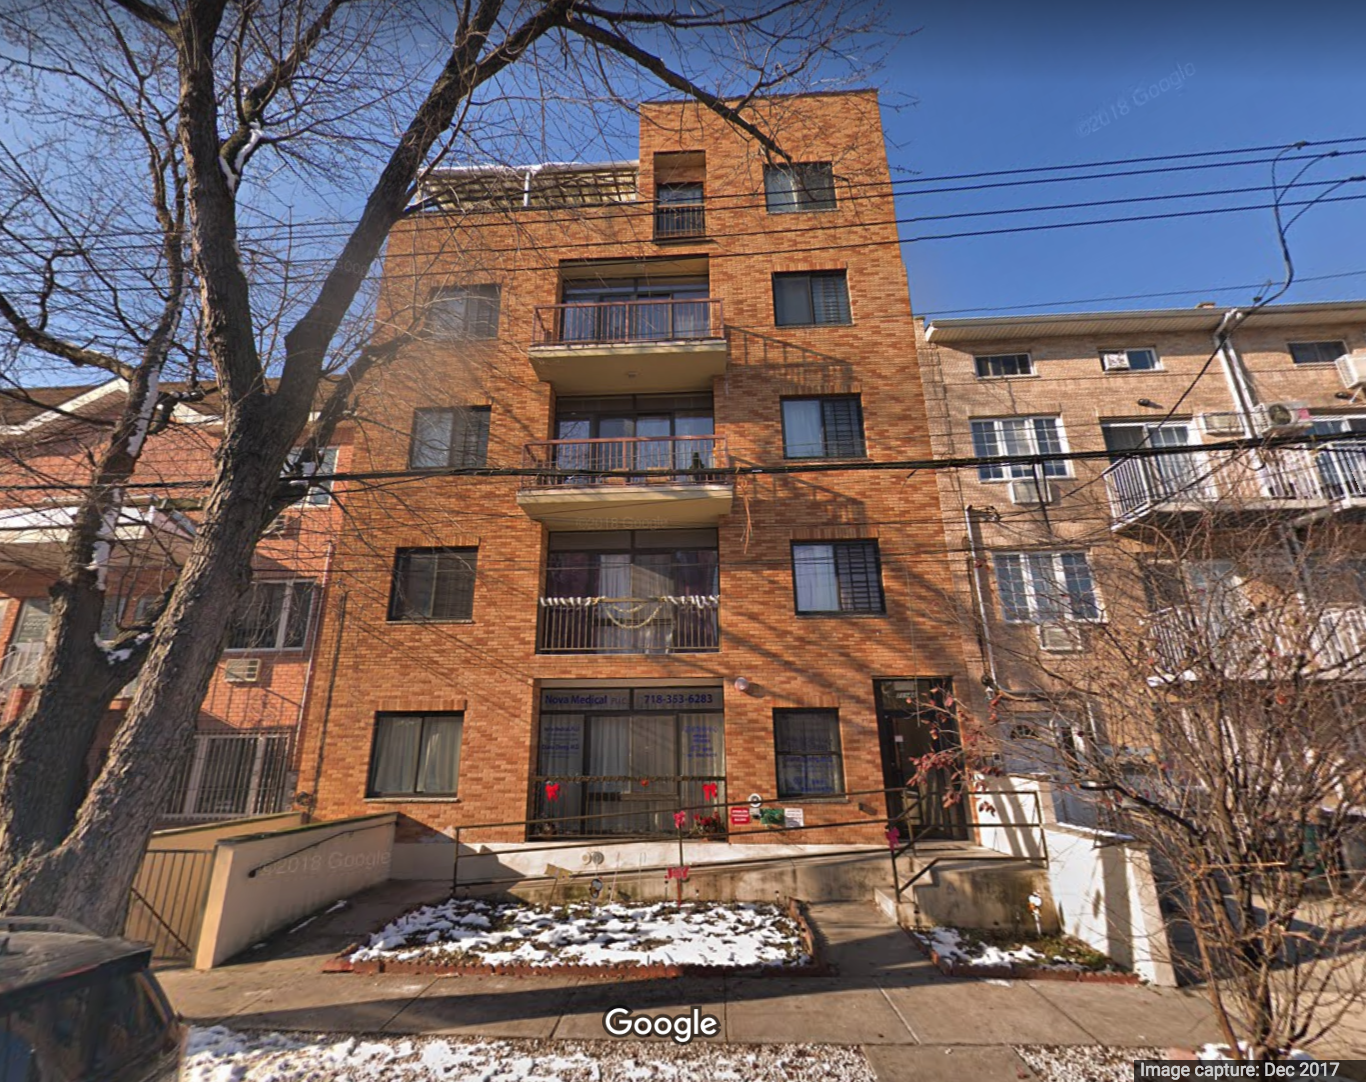 Two property owners allegedly failed to pay taxes on a building located at 71-44 160th Street in Fresh Meadows. Google Maps photo.